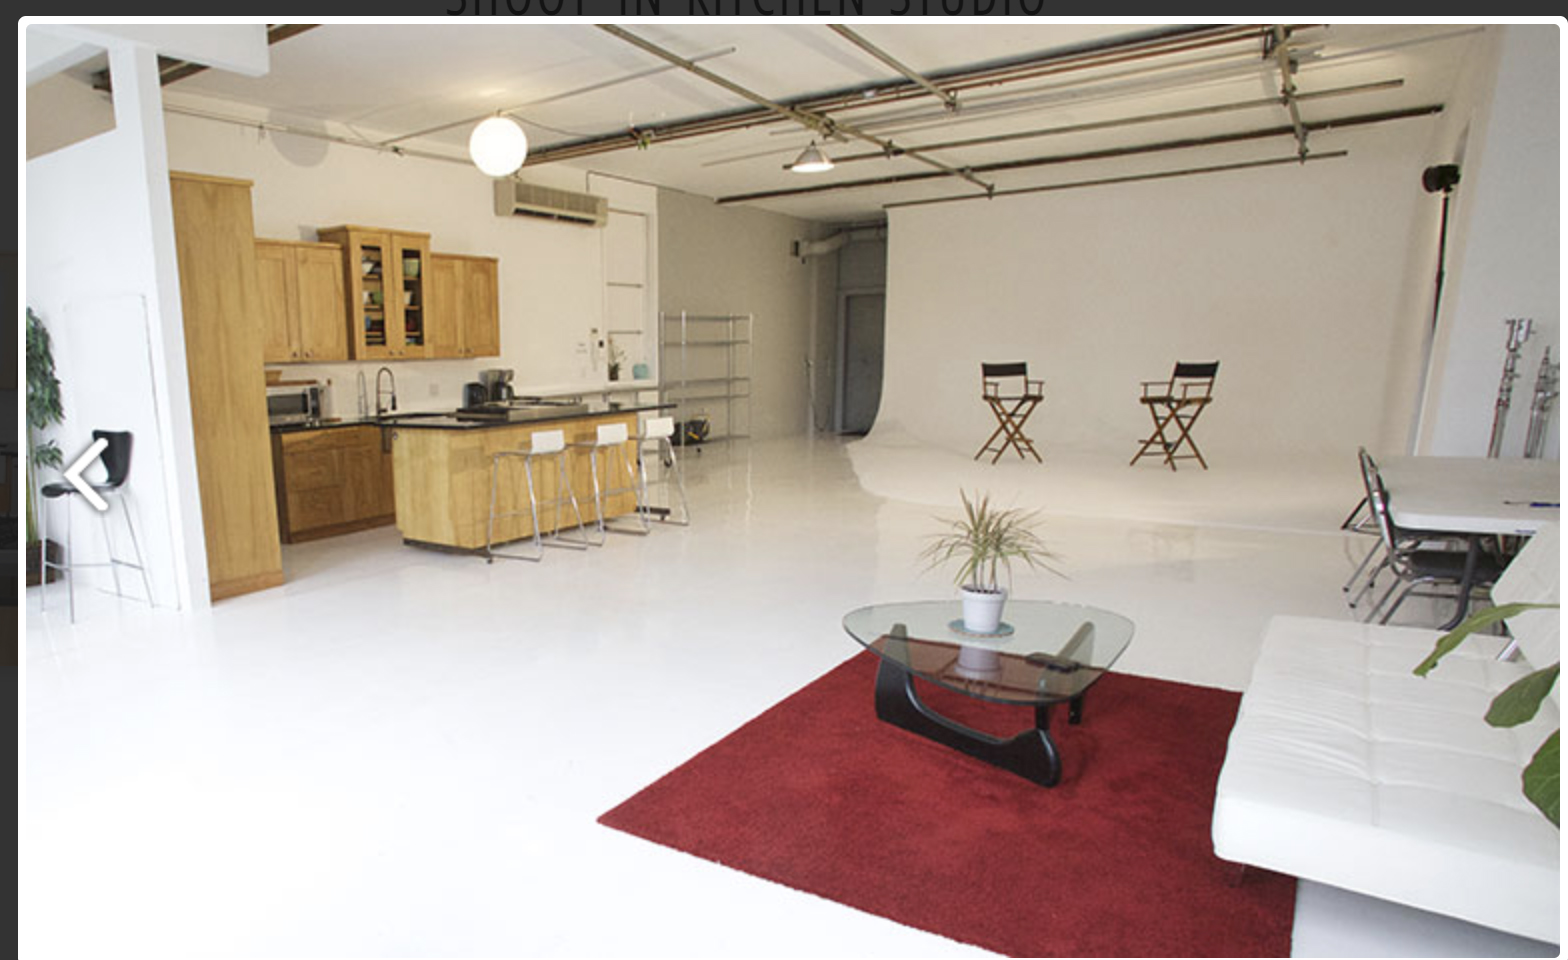 https://www.americanmovieco.com/featured/best-shoot-in-kitchen-nyc/